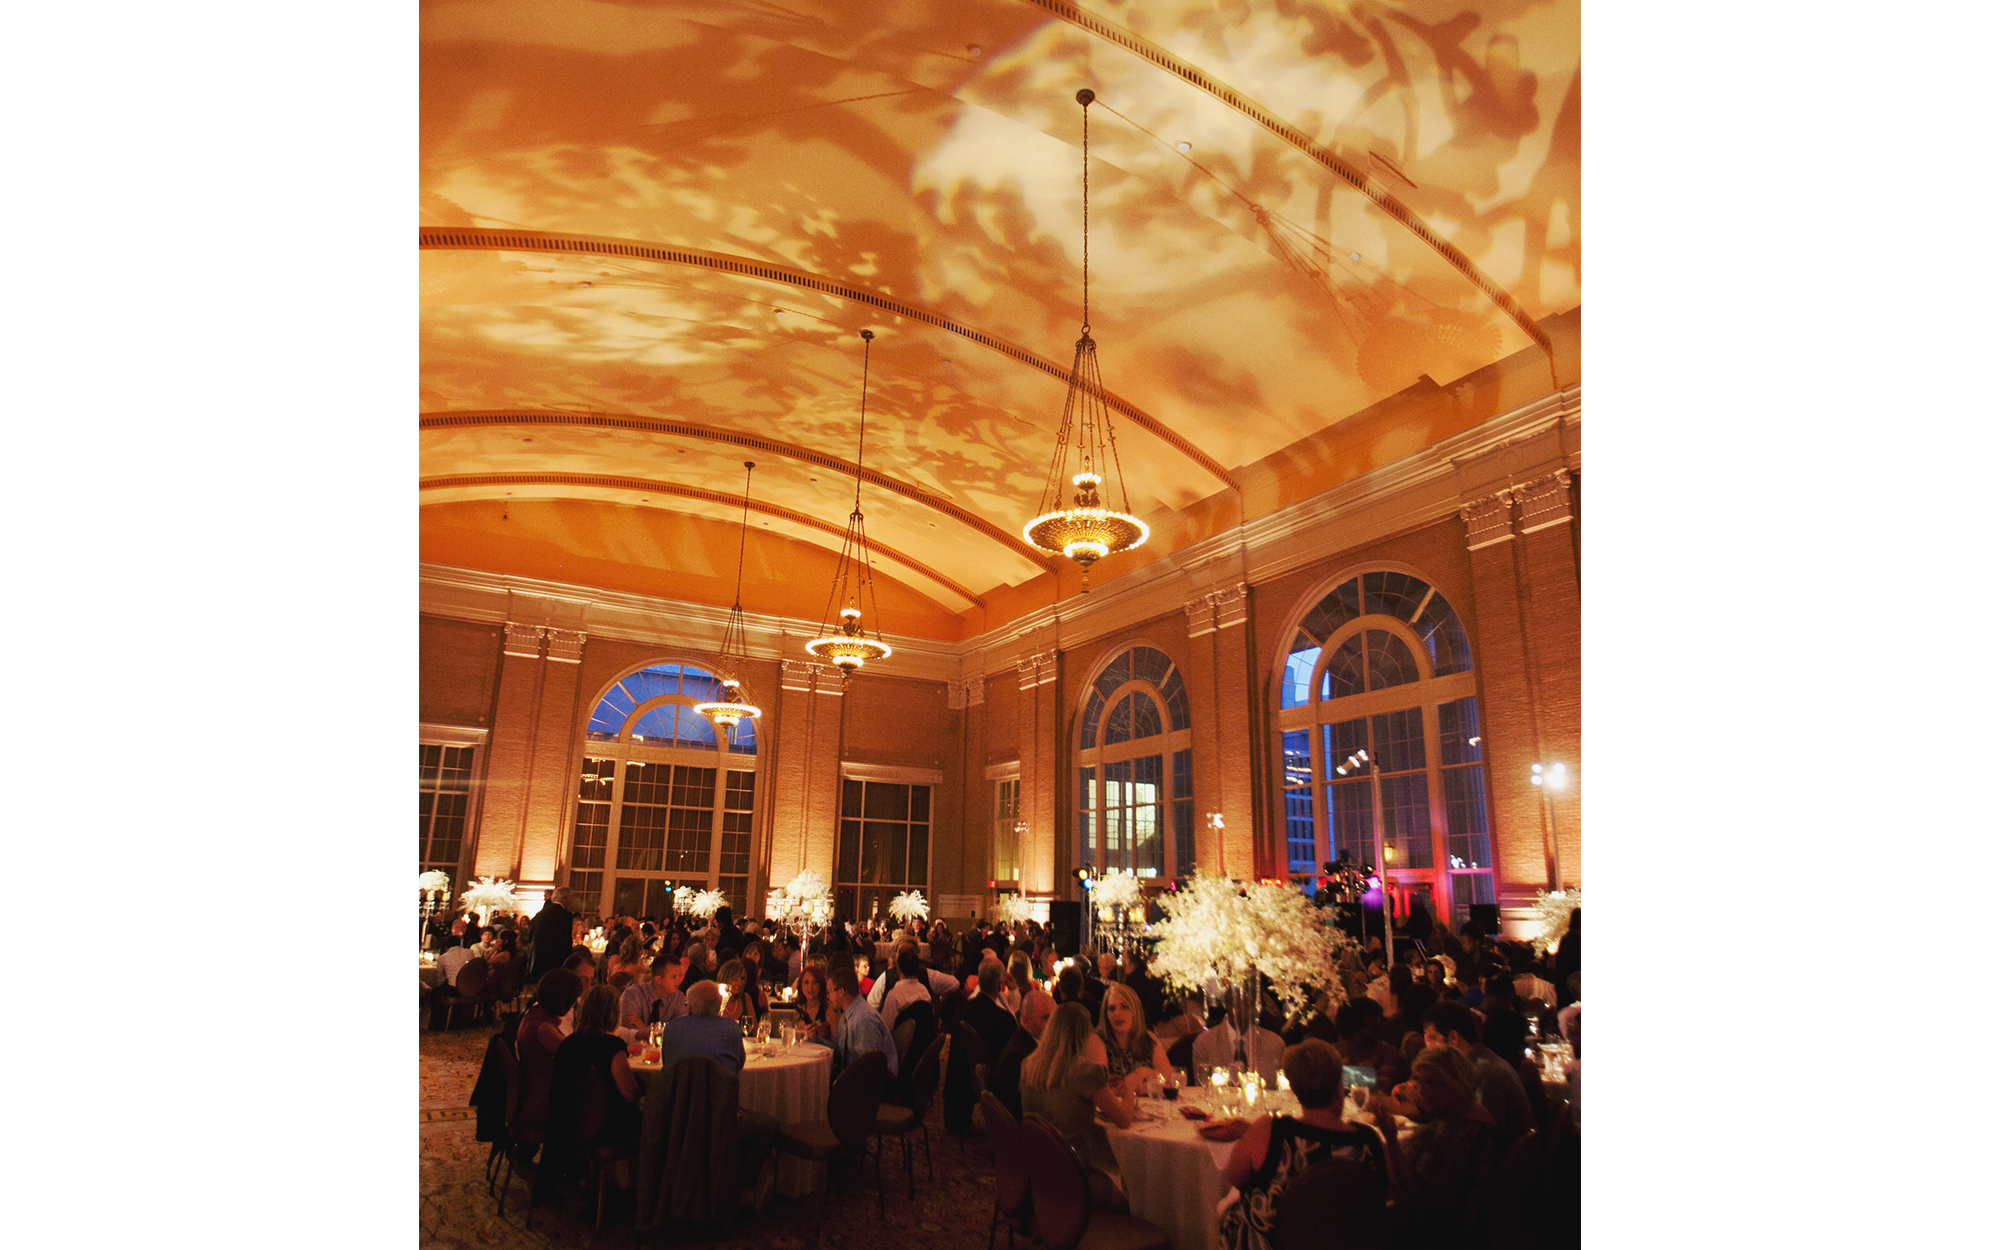 Gobo Projection on Union Station Ceiling Dallas, Texas